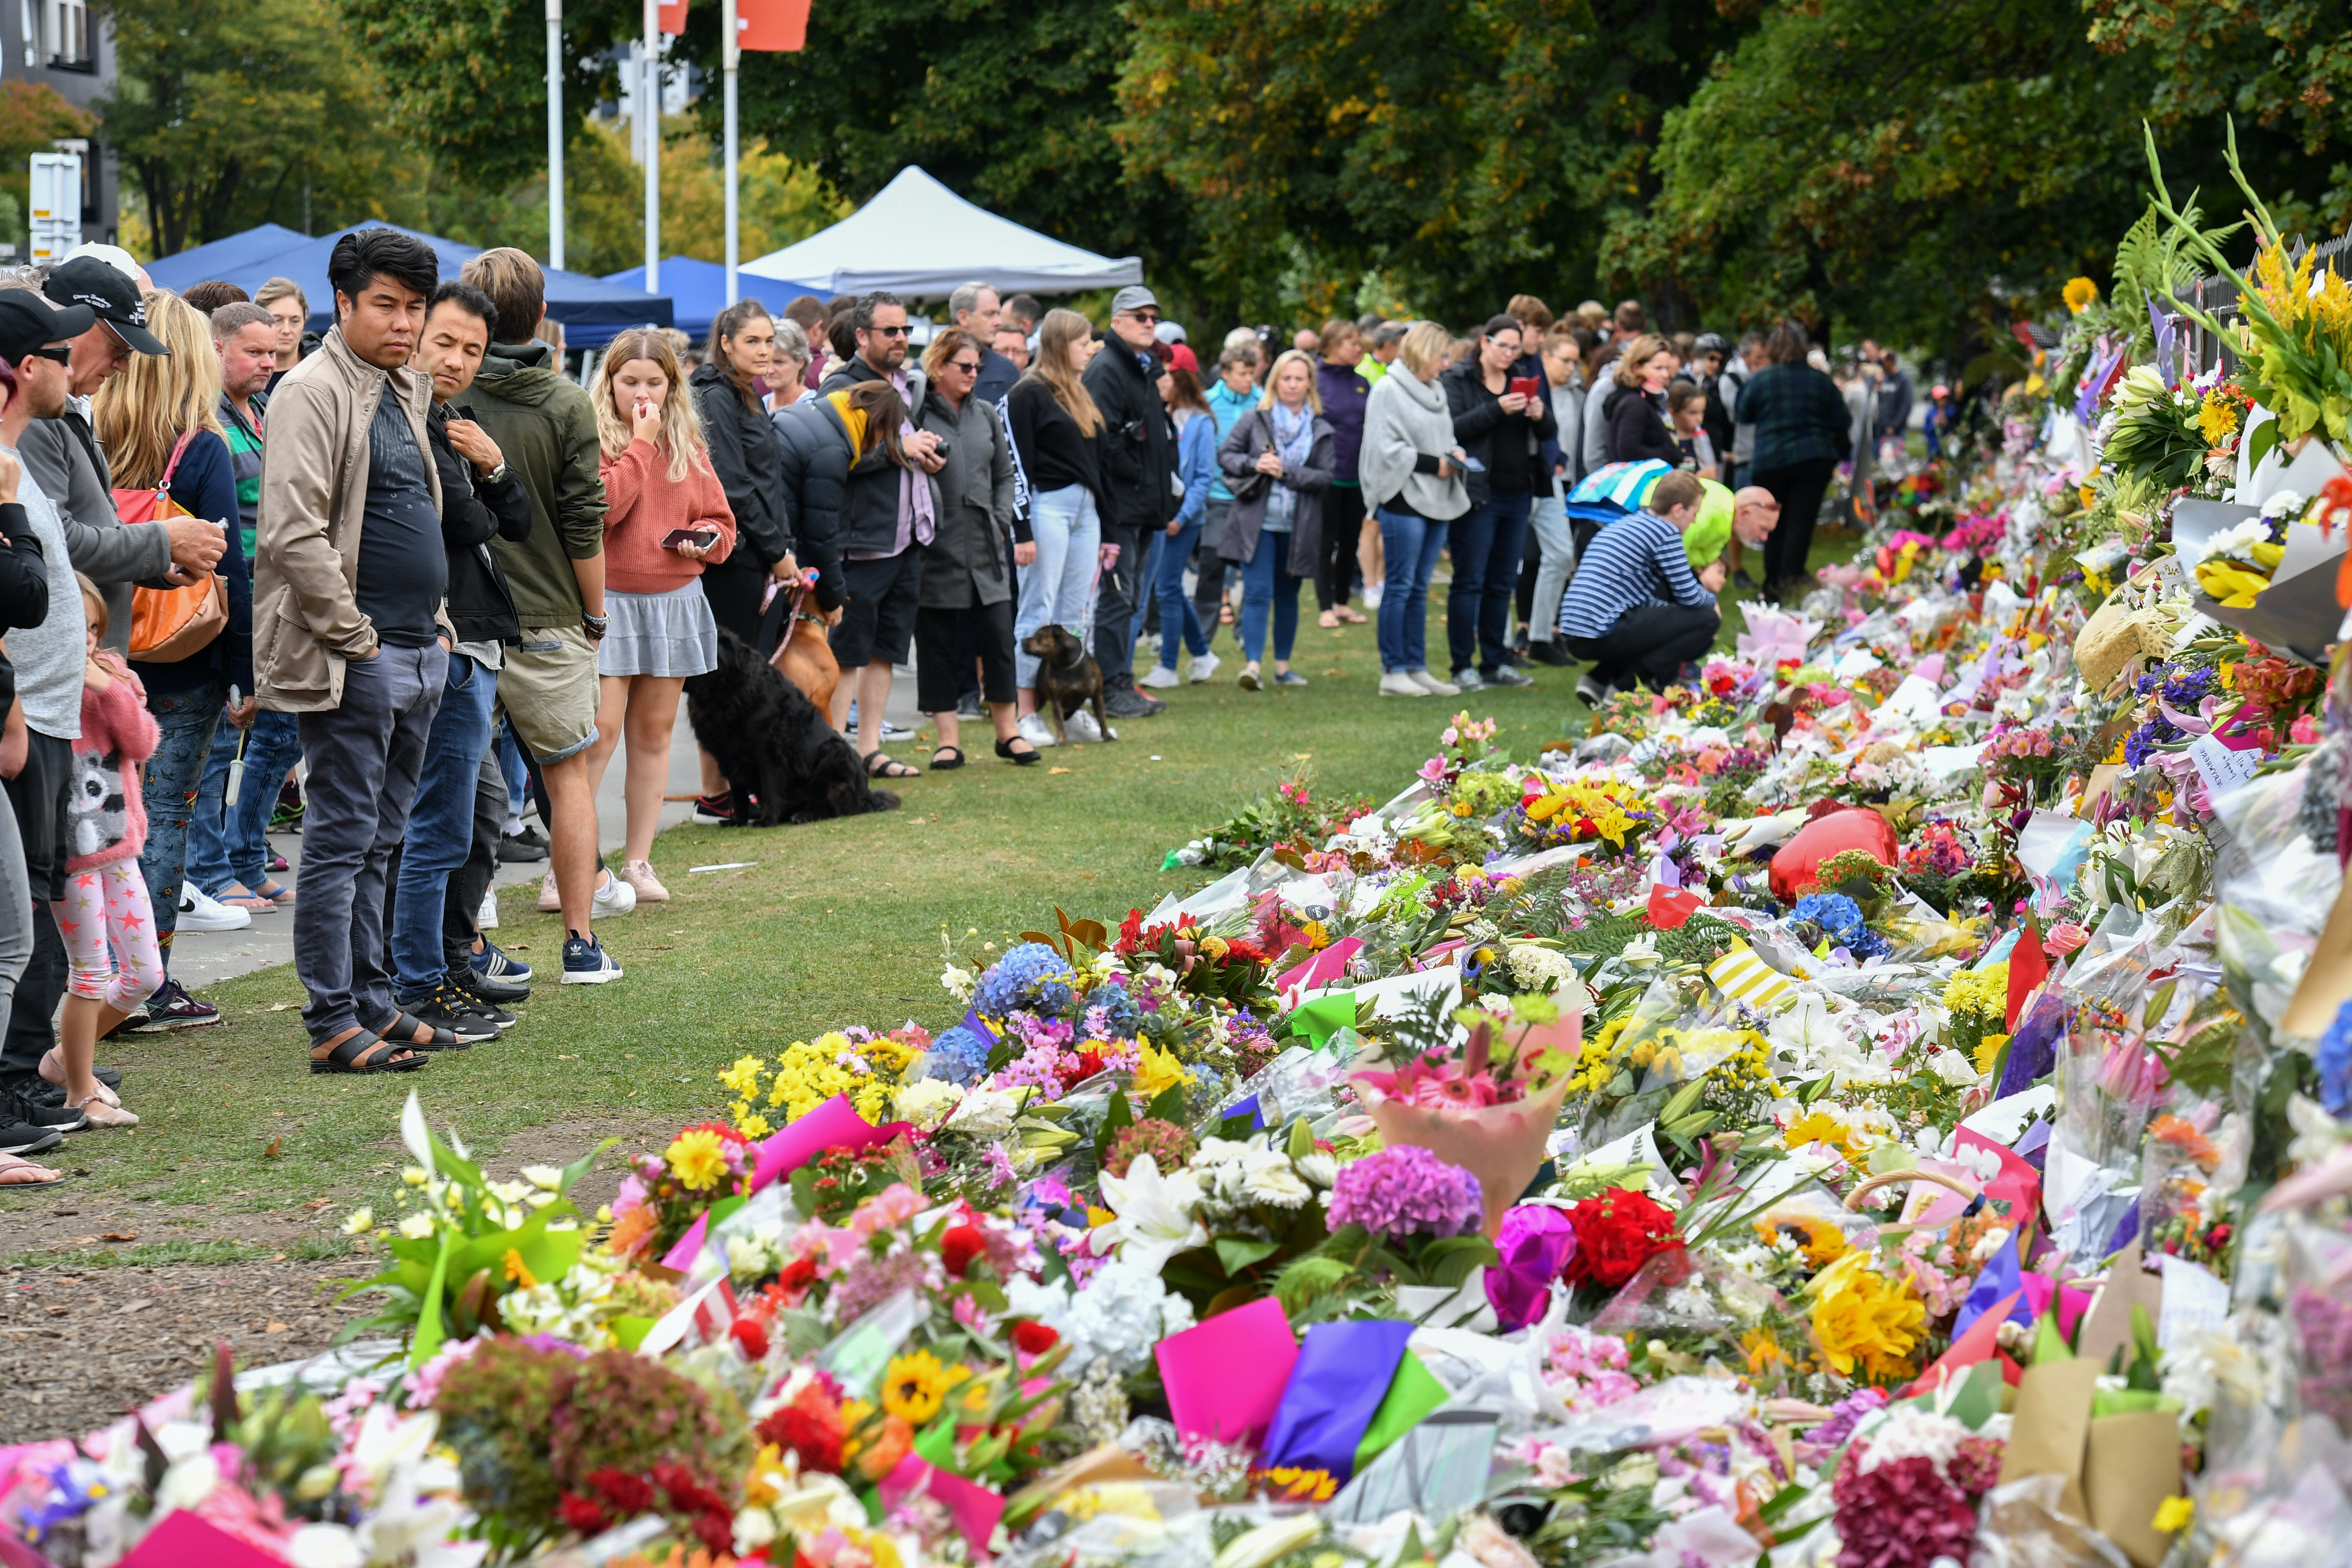 Four ways social media platforms could stop the spread of hateful content in aftermath of terror attacks